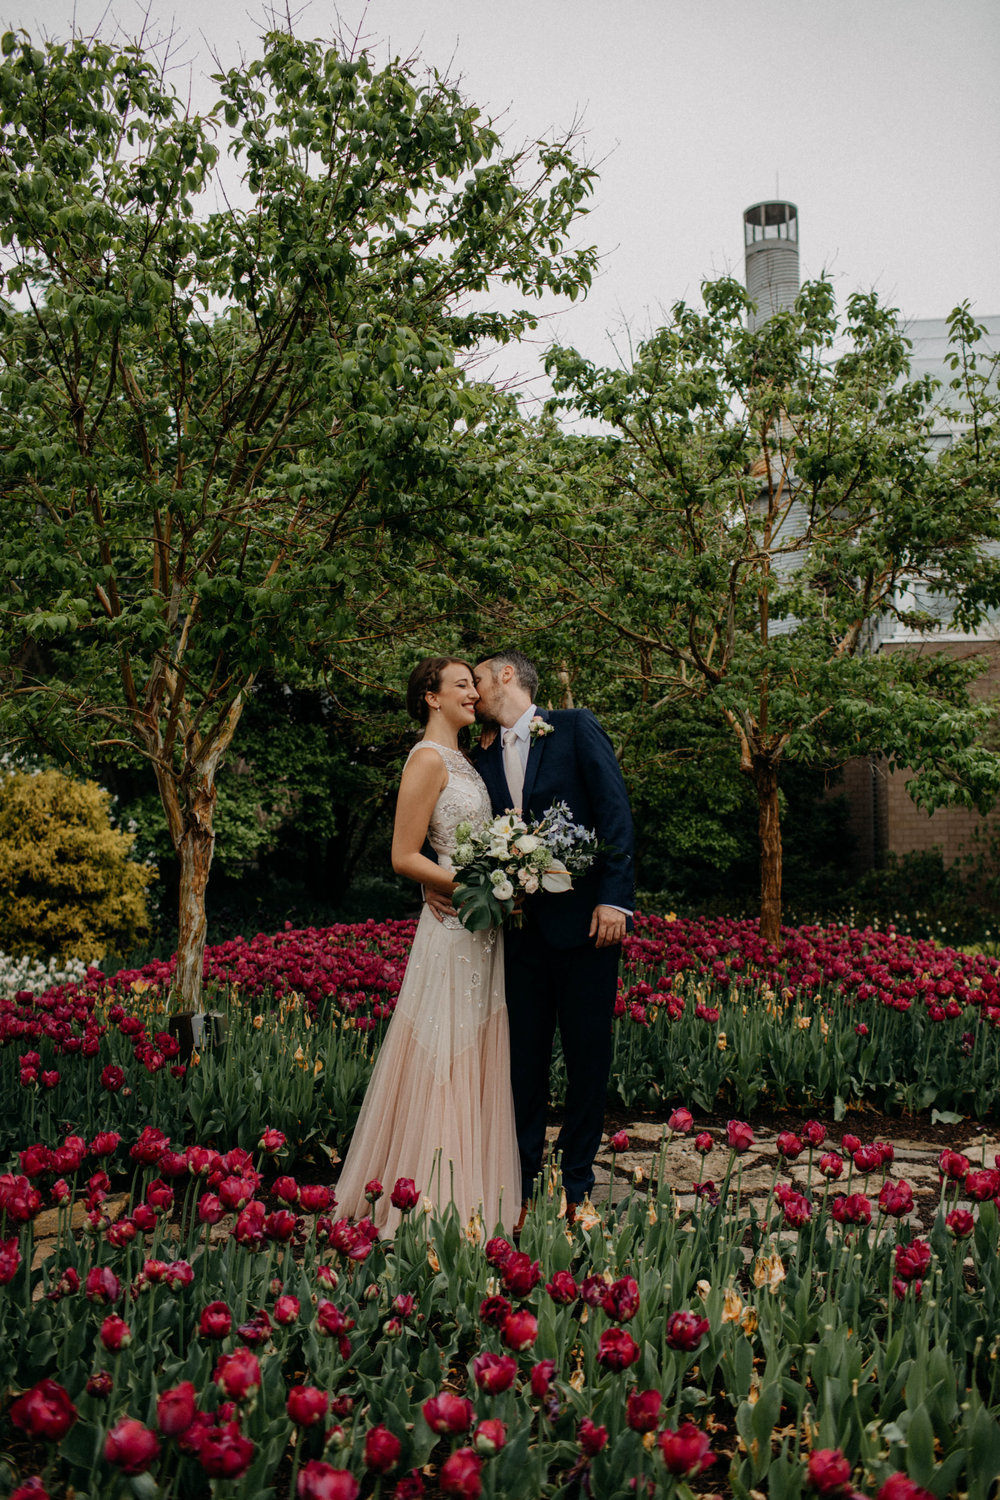 franklin park conservatory wedding columbus ohio wedding photographer grace e jones photography131.jpg